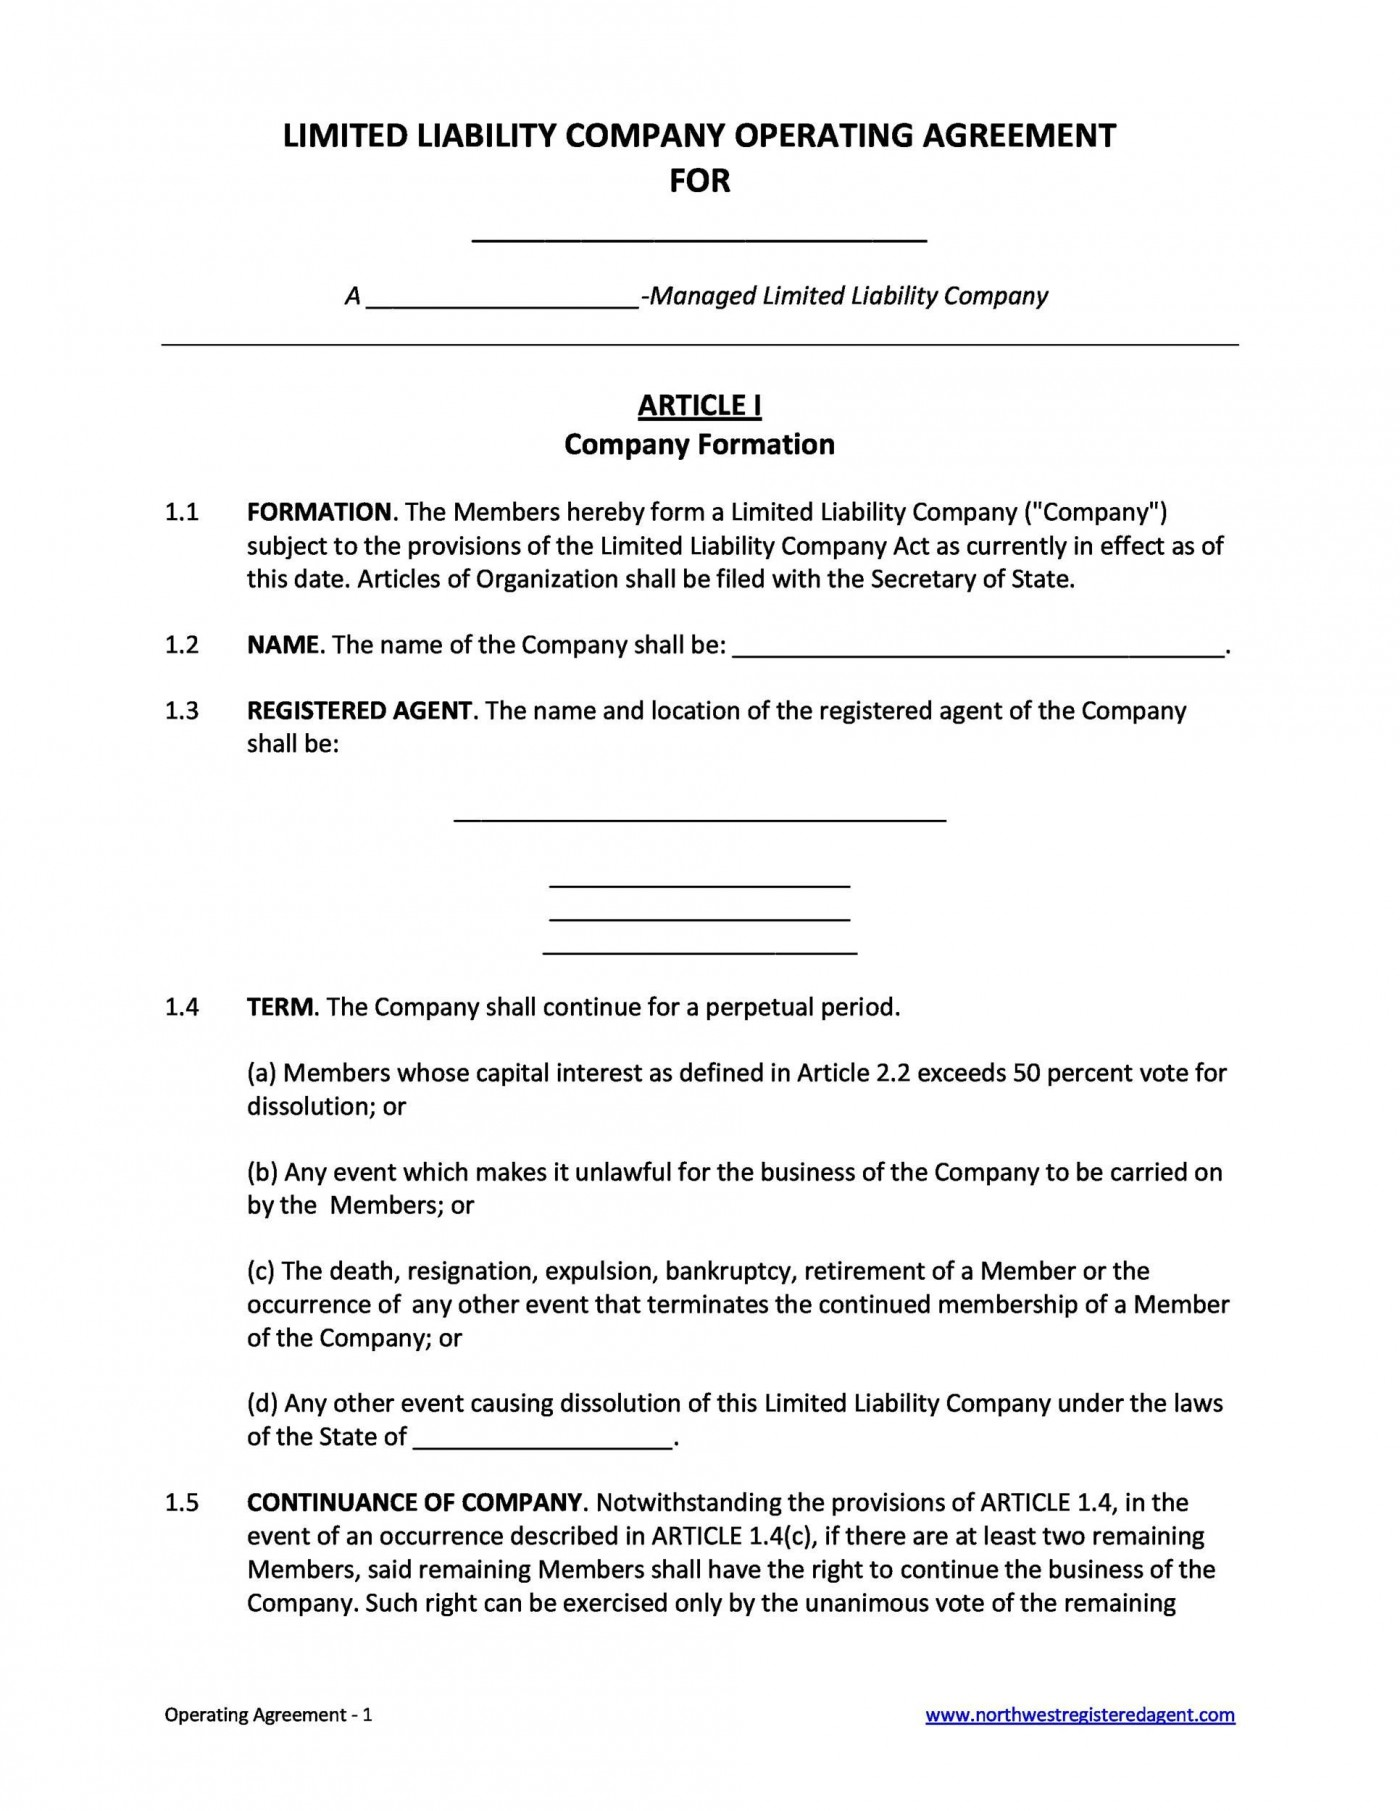 006 Remarkable Operation Agreement Llc Template Concept  Operating Florida Indiana Single Member California1400